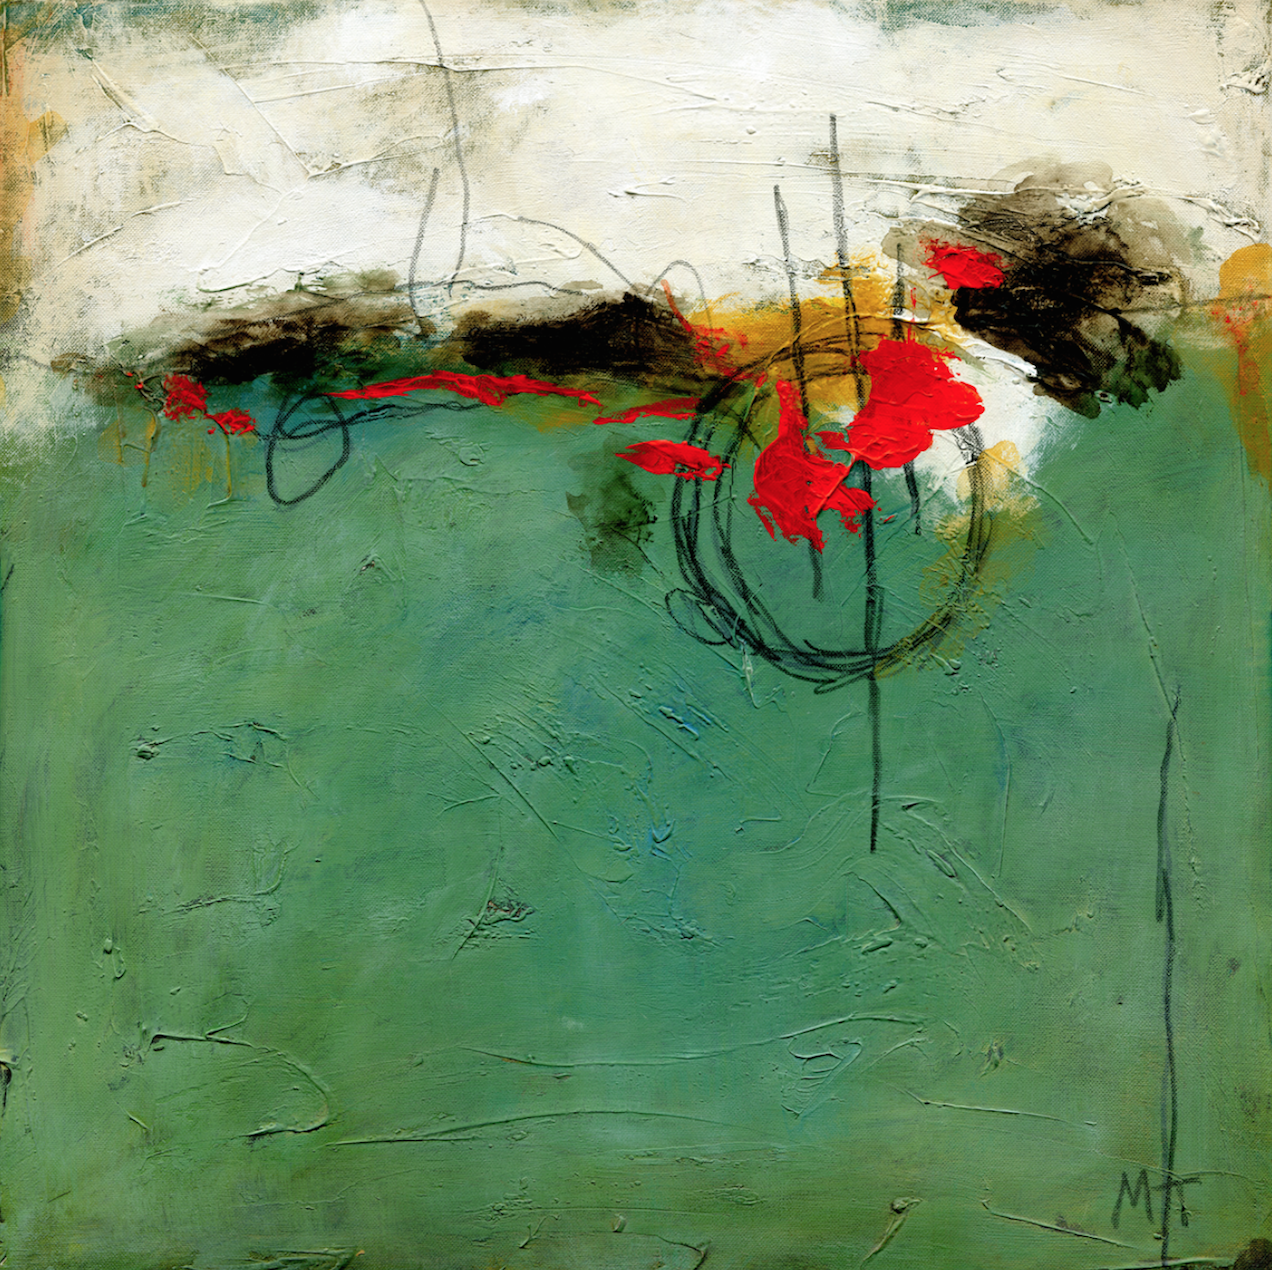 Threaded, 2015 (SOLD)